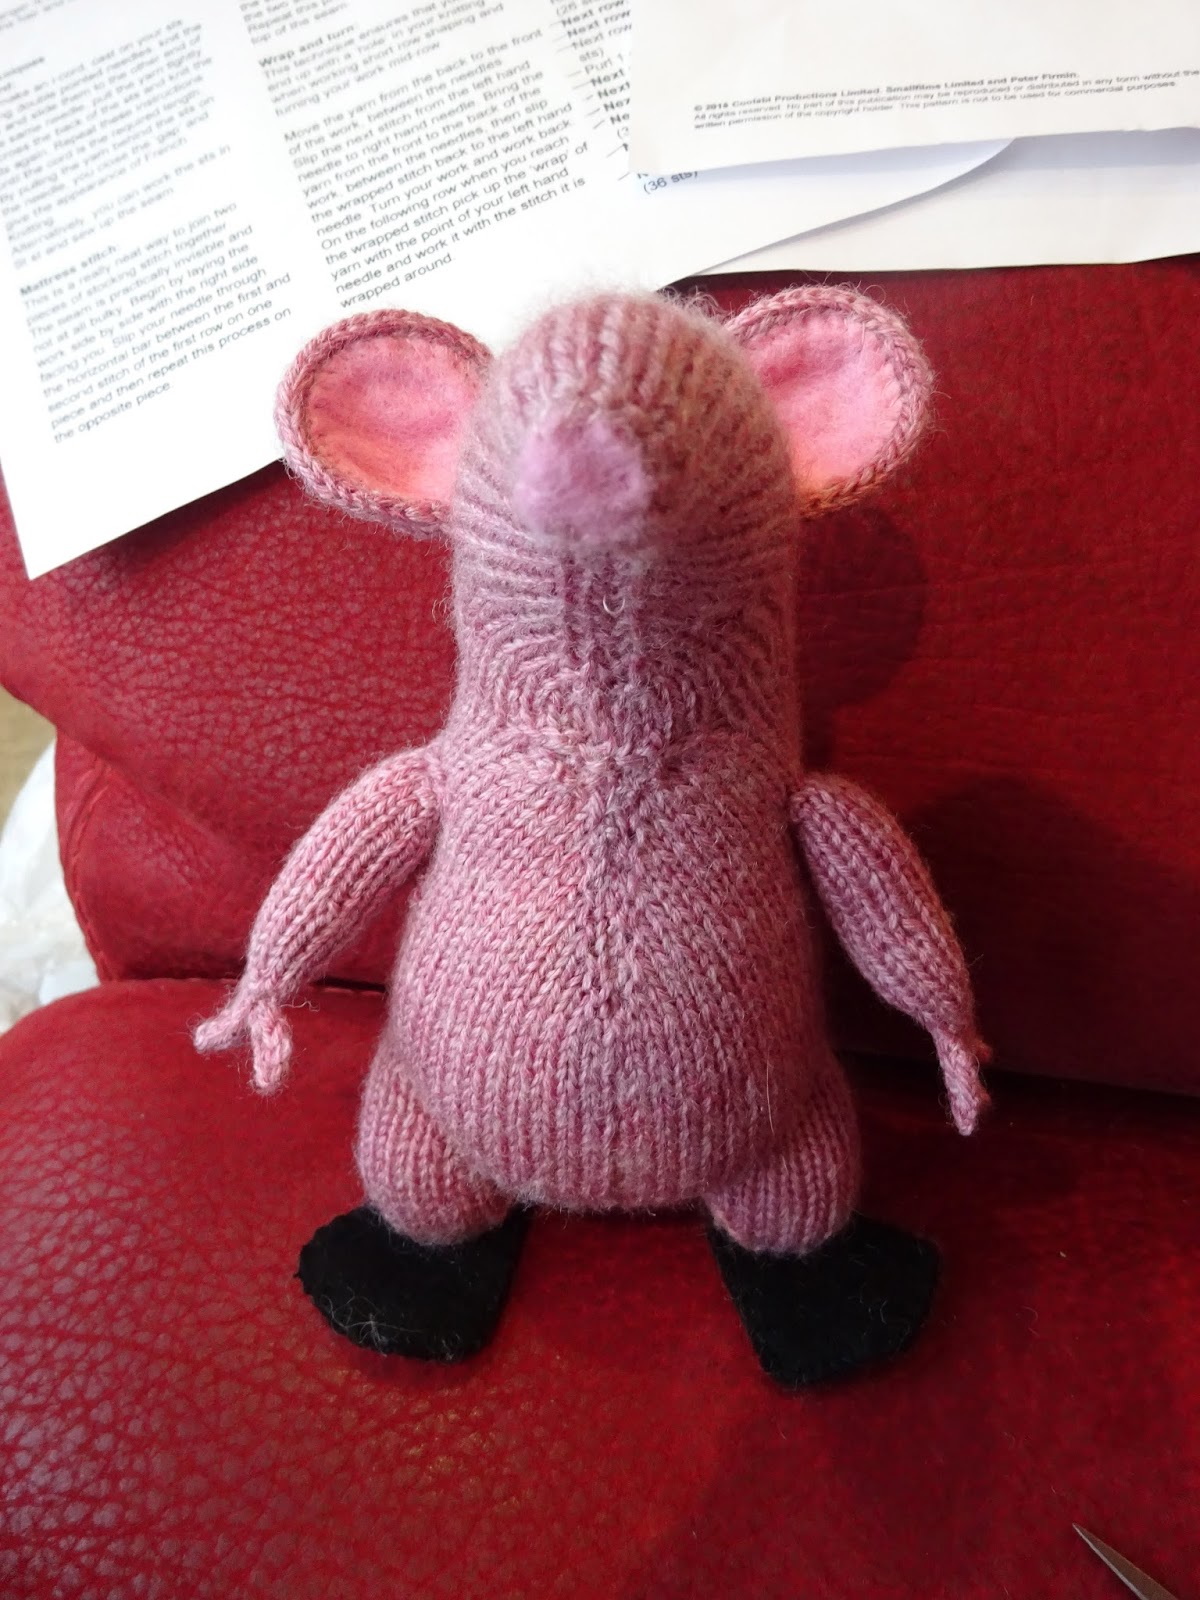 Extreme Knitting Redhead: A Small Clanger for a Small Boy